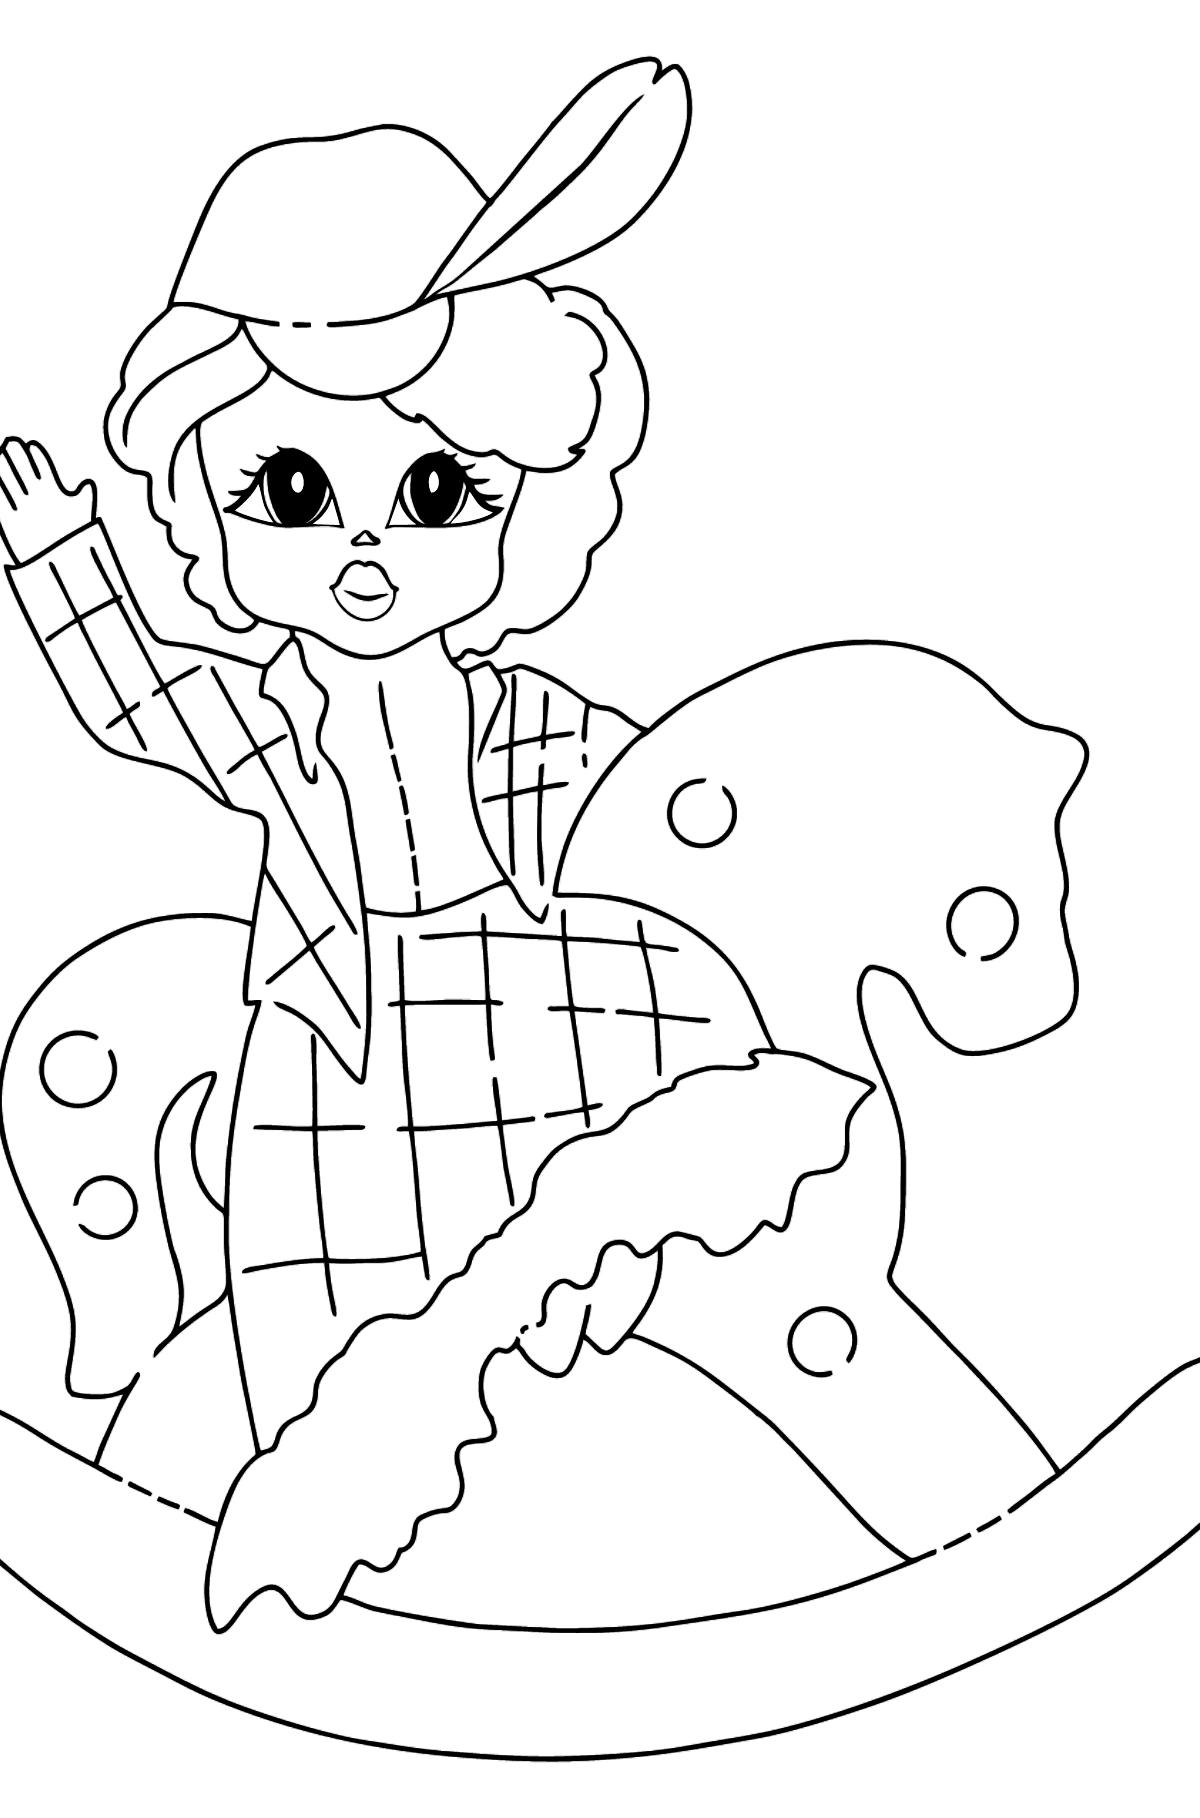 Coloring Picture - A Princess on a Horse - Coloring Pages for Kids